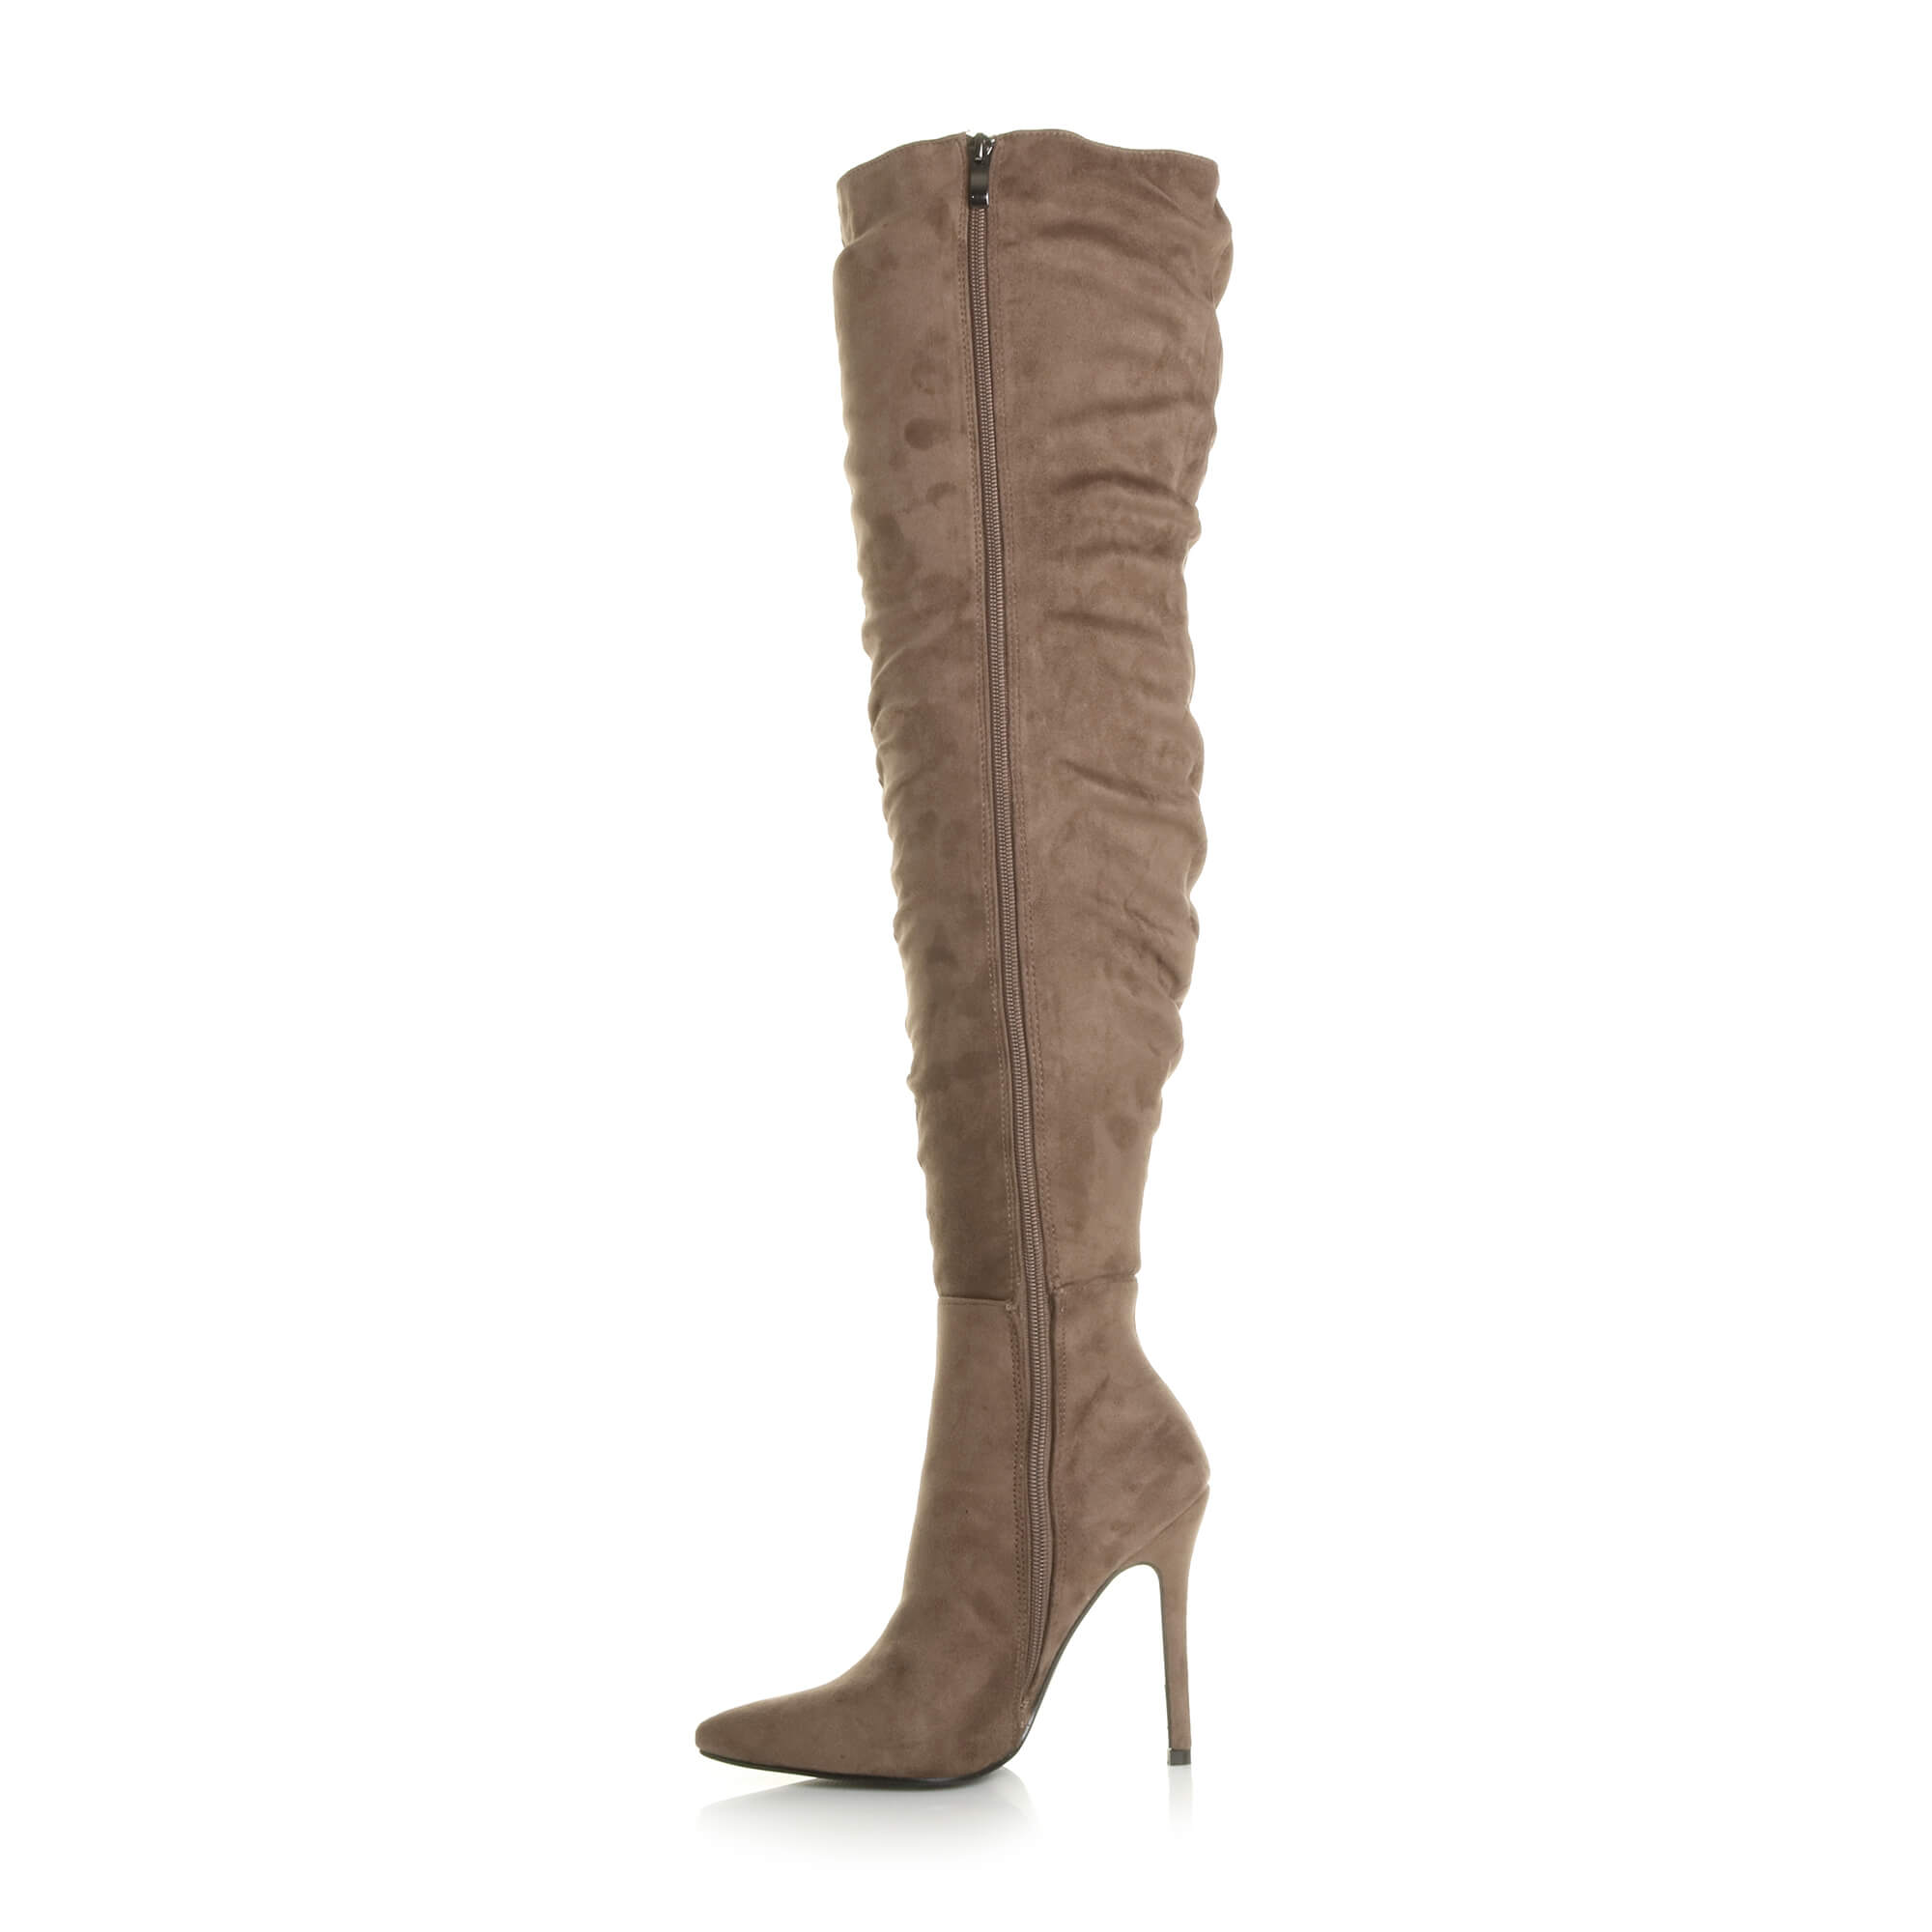 WOMENS-LADIES-SLOUCH-RUCHED-OVER-THE-KNEE-POINTED-THIGH-HIGH-HEELED-BOOTS-SIZE thumbnail 16